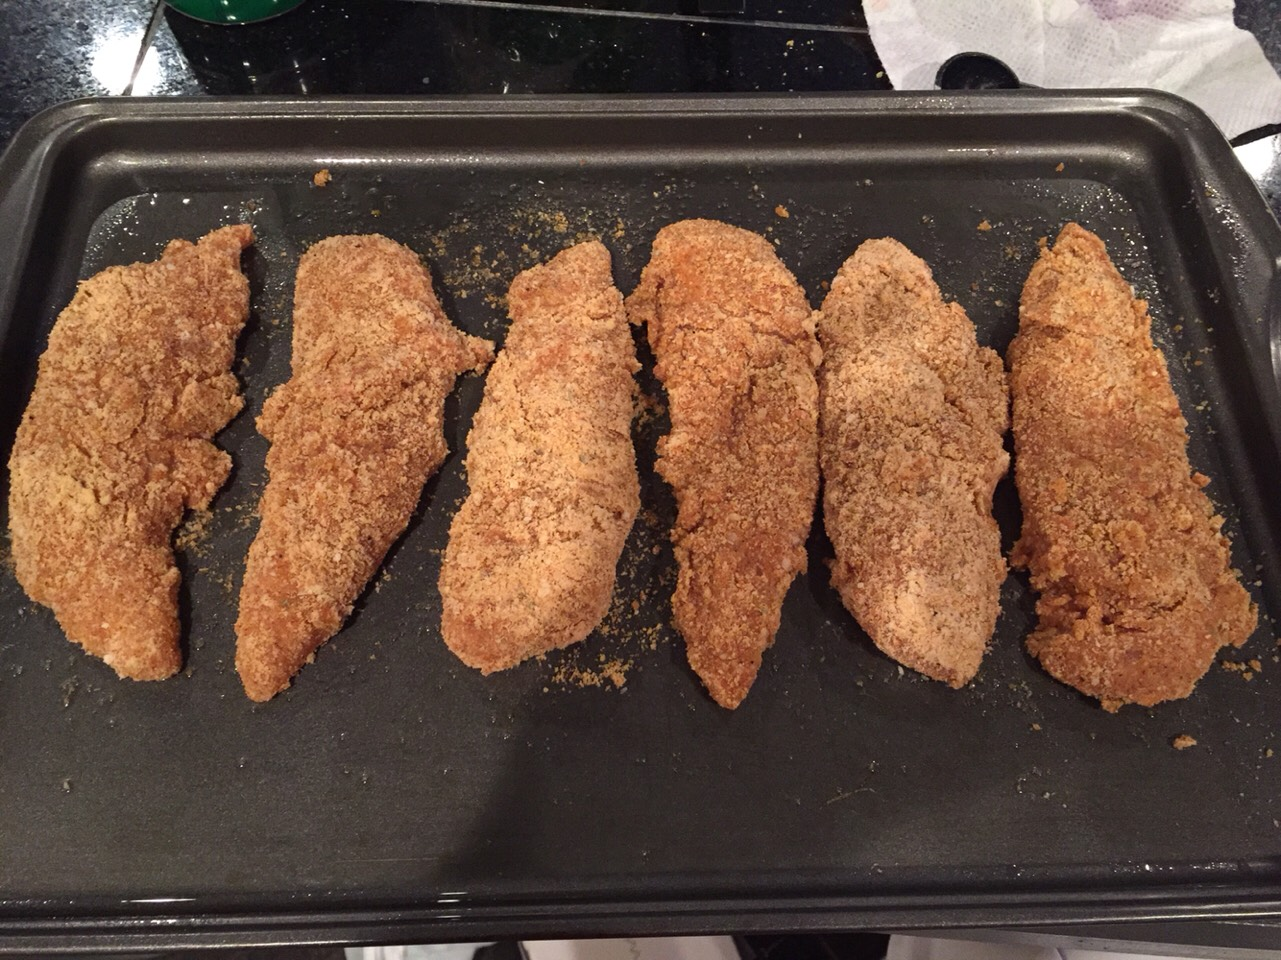 Finished breaded chicken